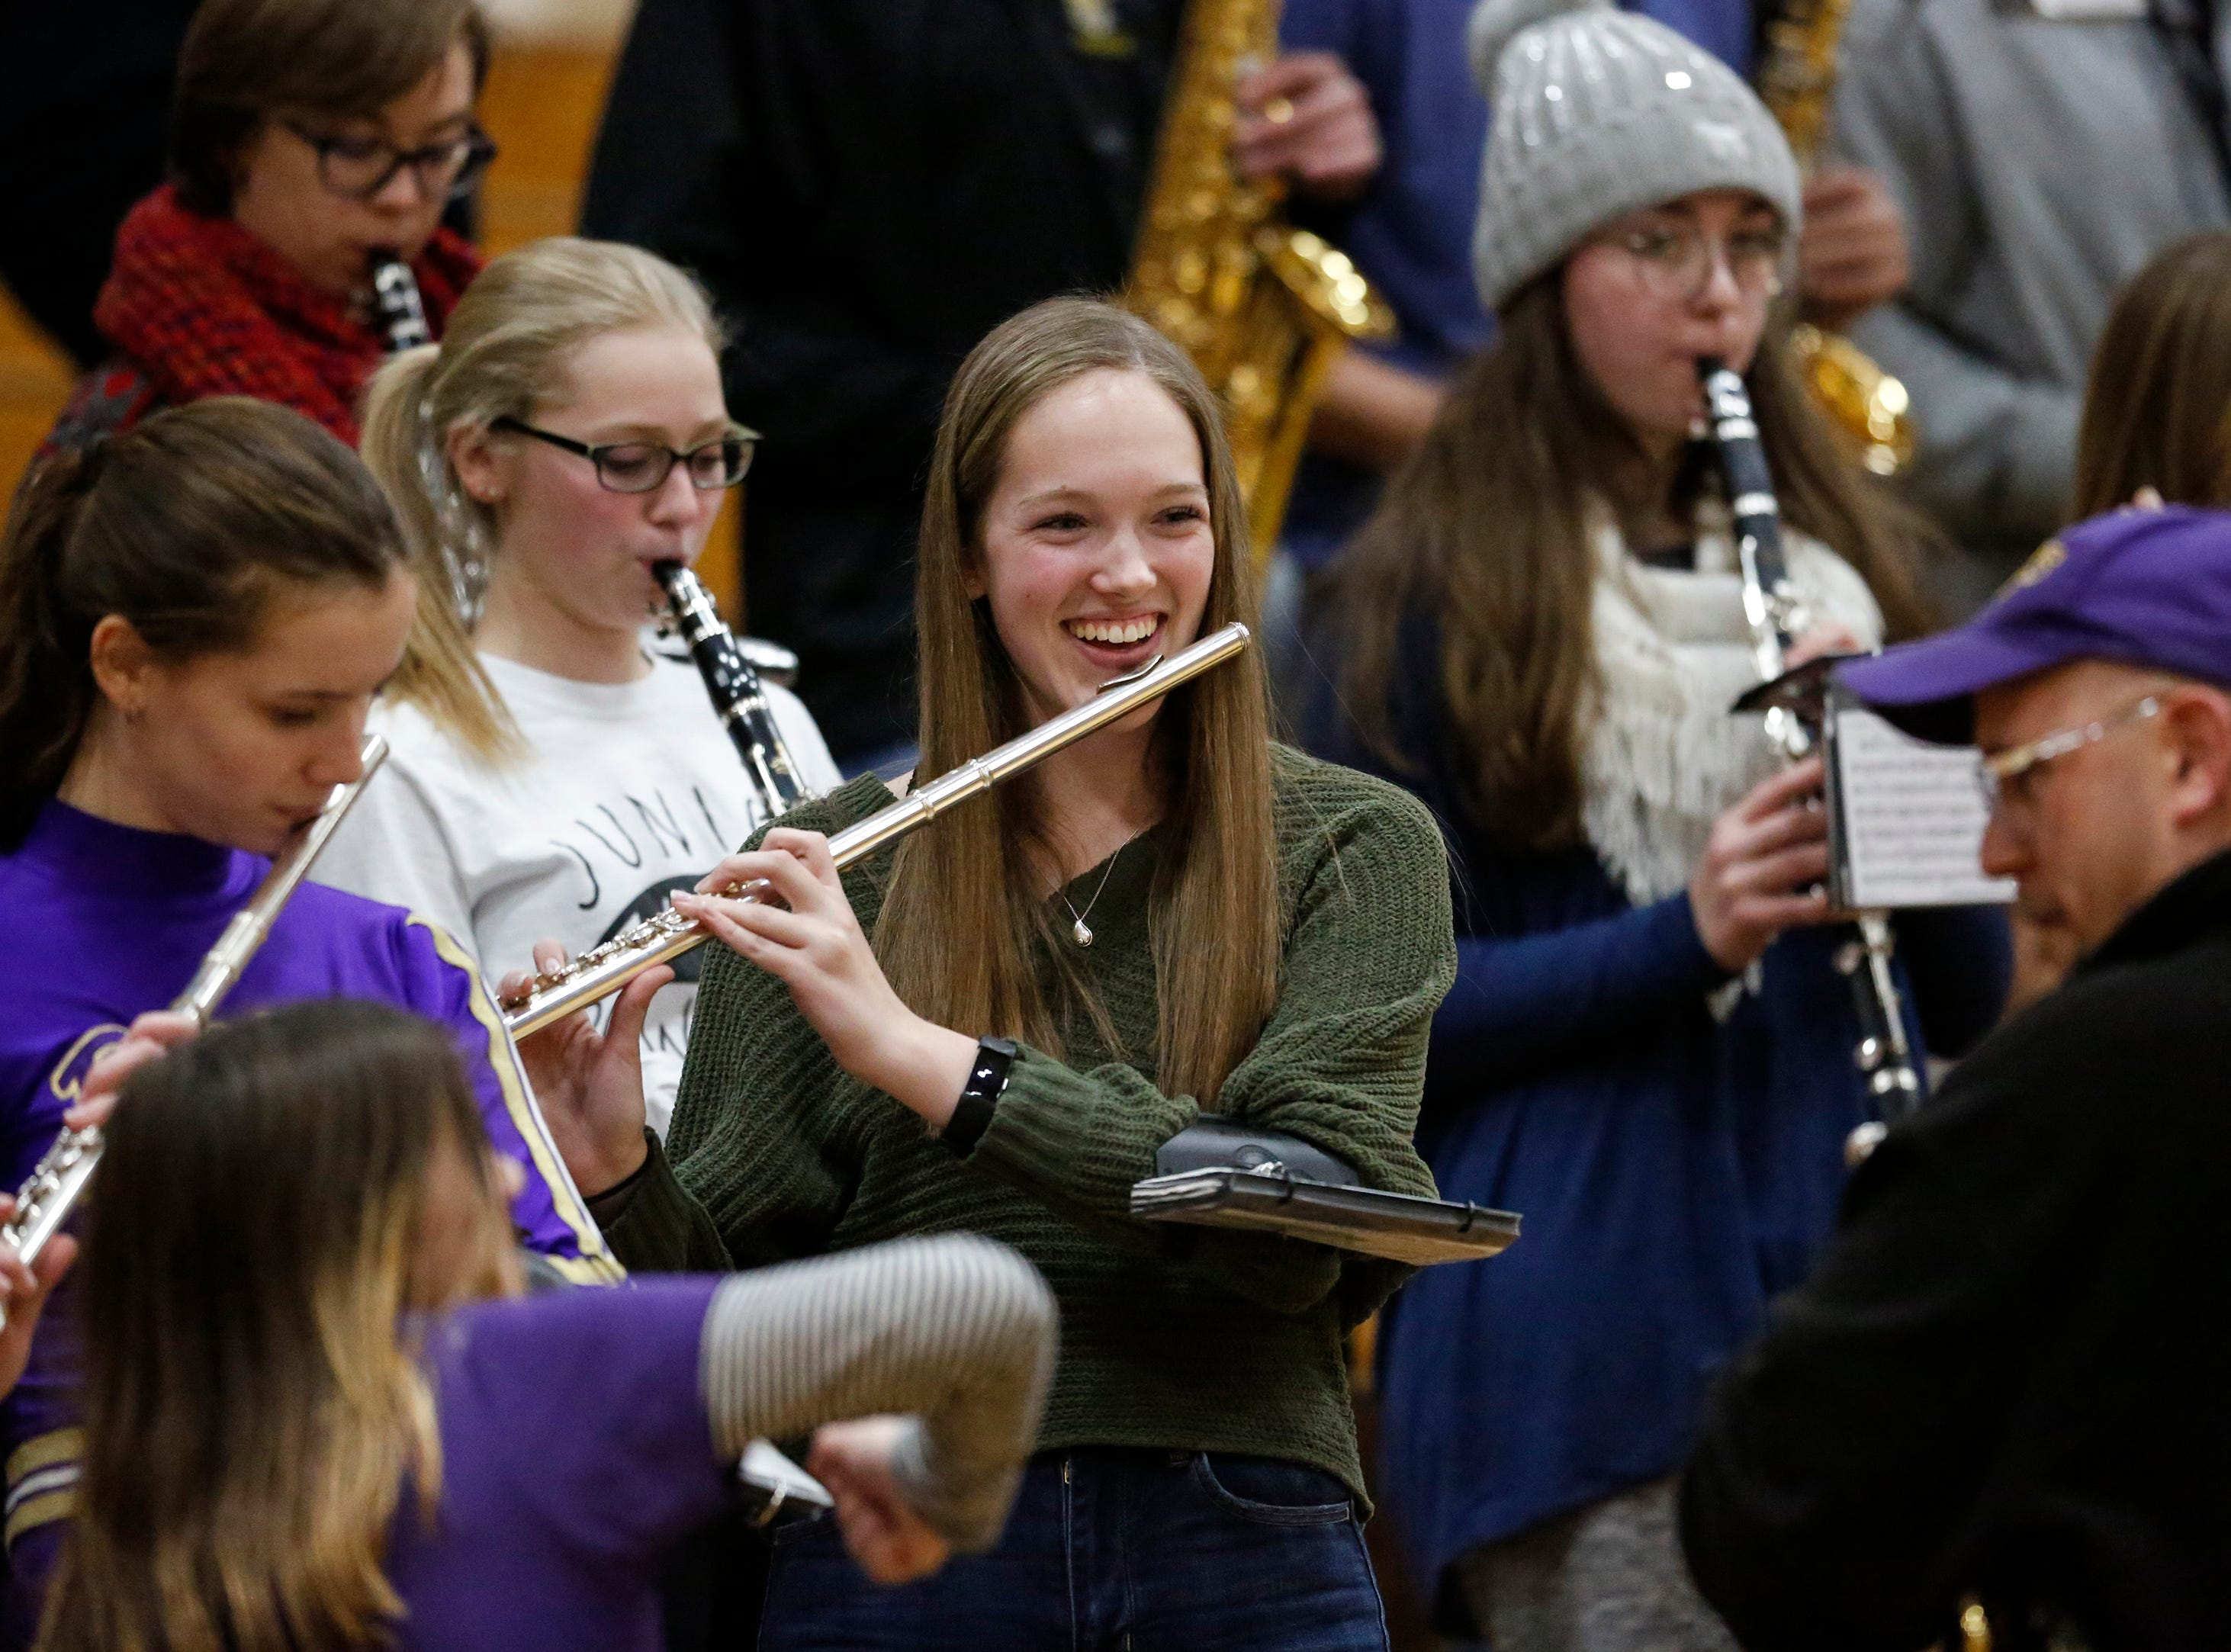 A member of the Two Rivers' band laughs at her band leader during a boys basketball game against Sheboygan Falls at Two Rivers High School Tuesday, December 4, 2018, in Two Rivers, Wis. Joshua Clark/USA TODAY NETWORK-Wisconsin